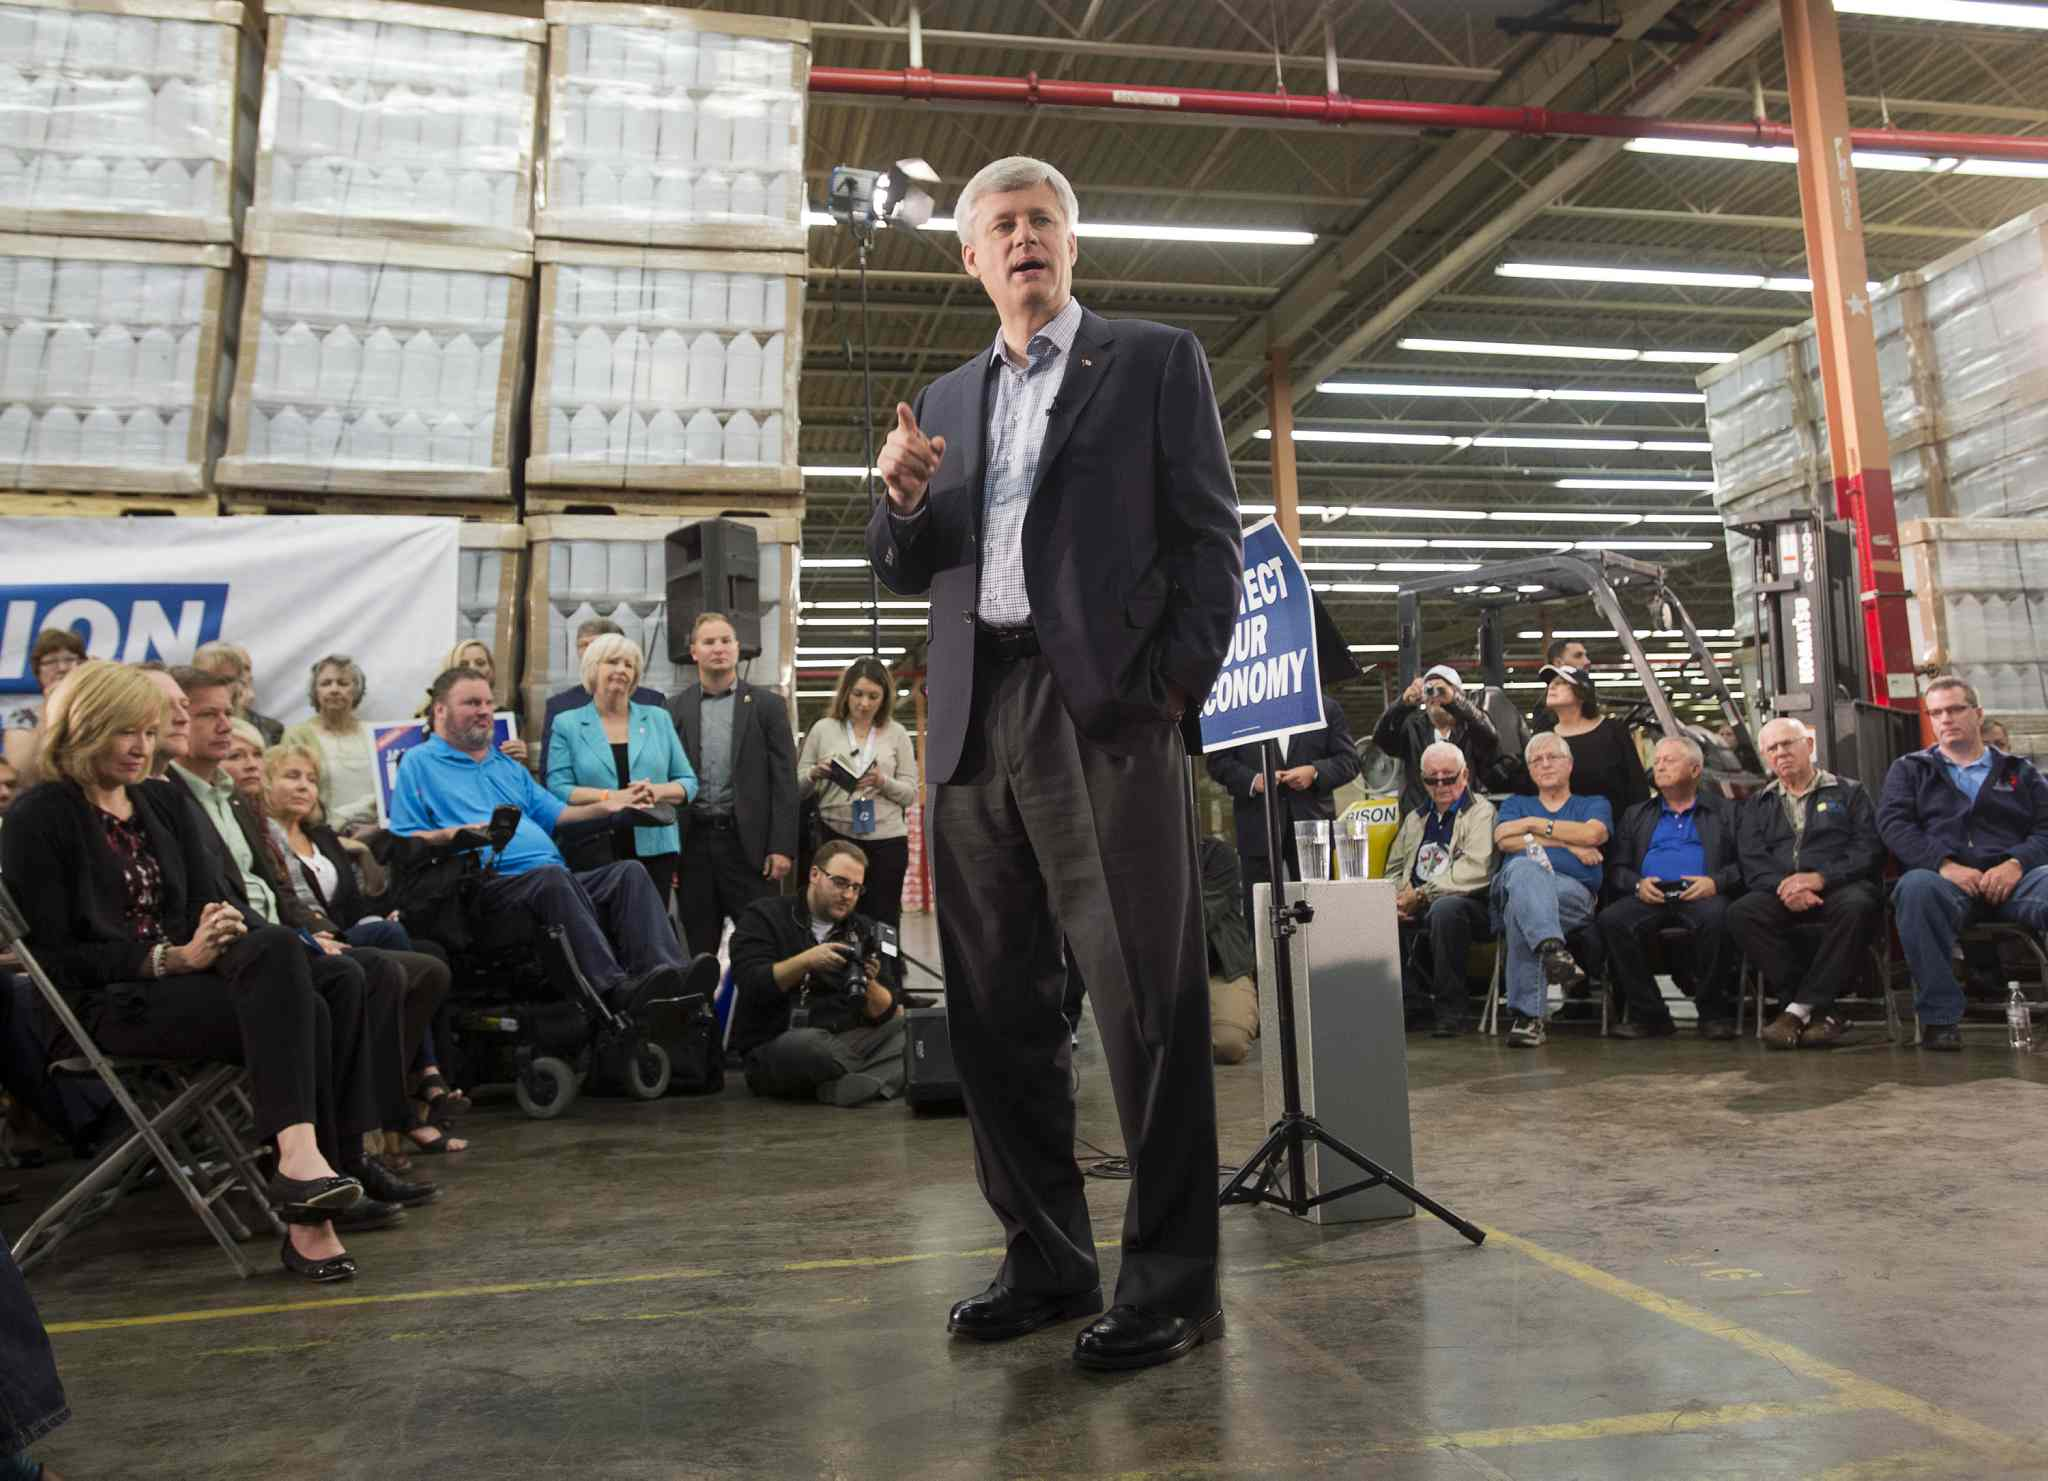 Prime Minister Stephen Harper speaks to supporters while in Winnipeg Tuesday.